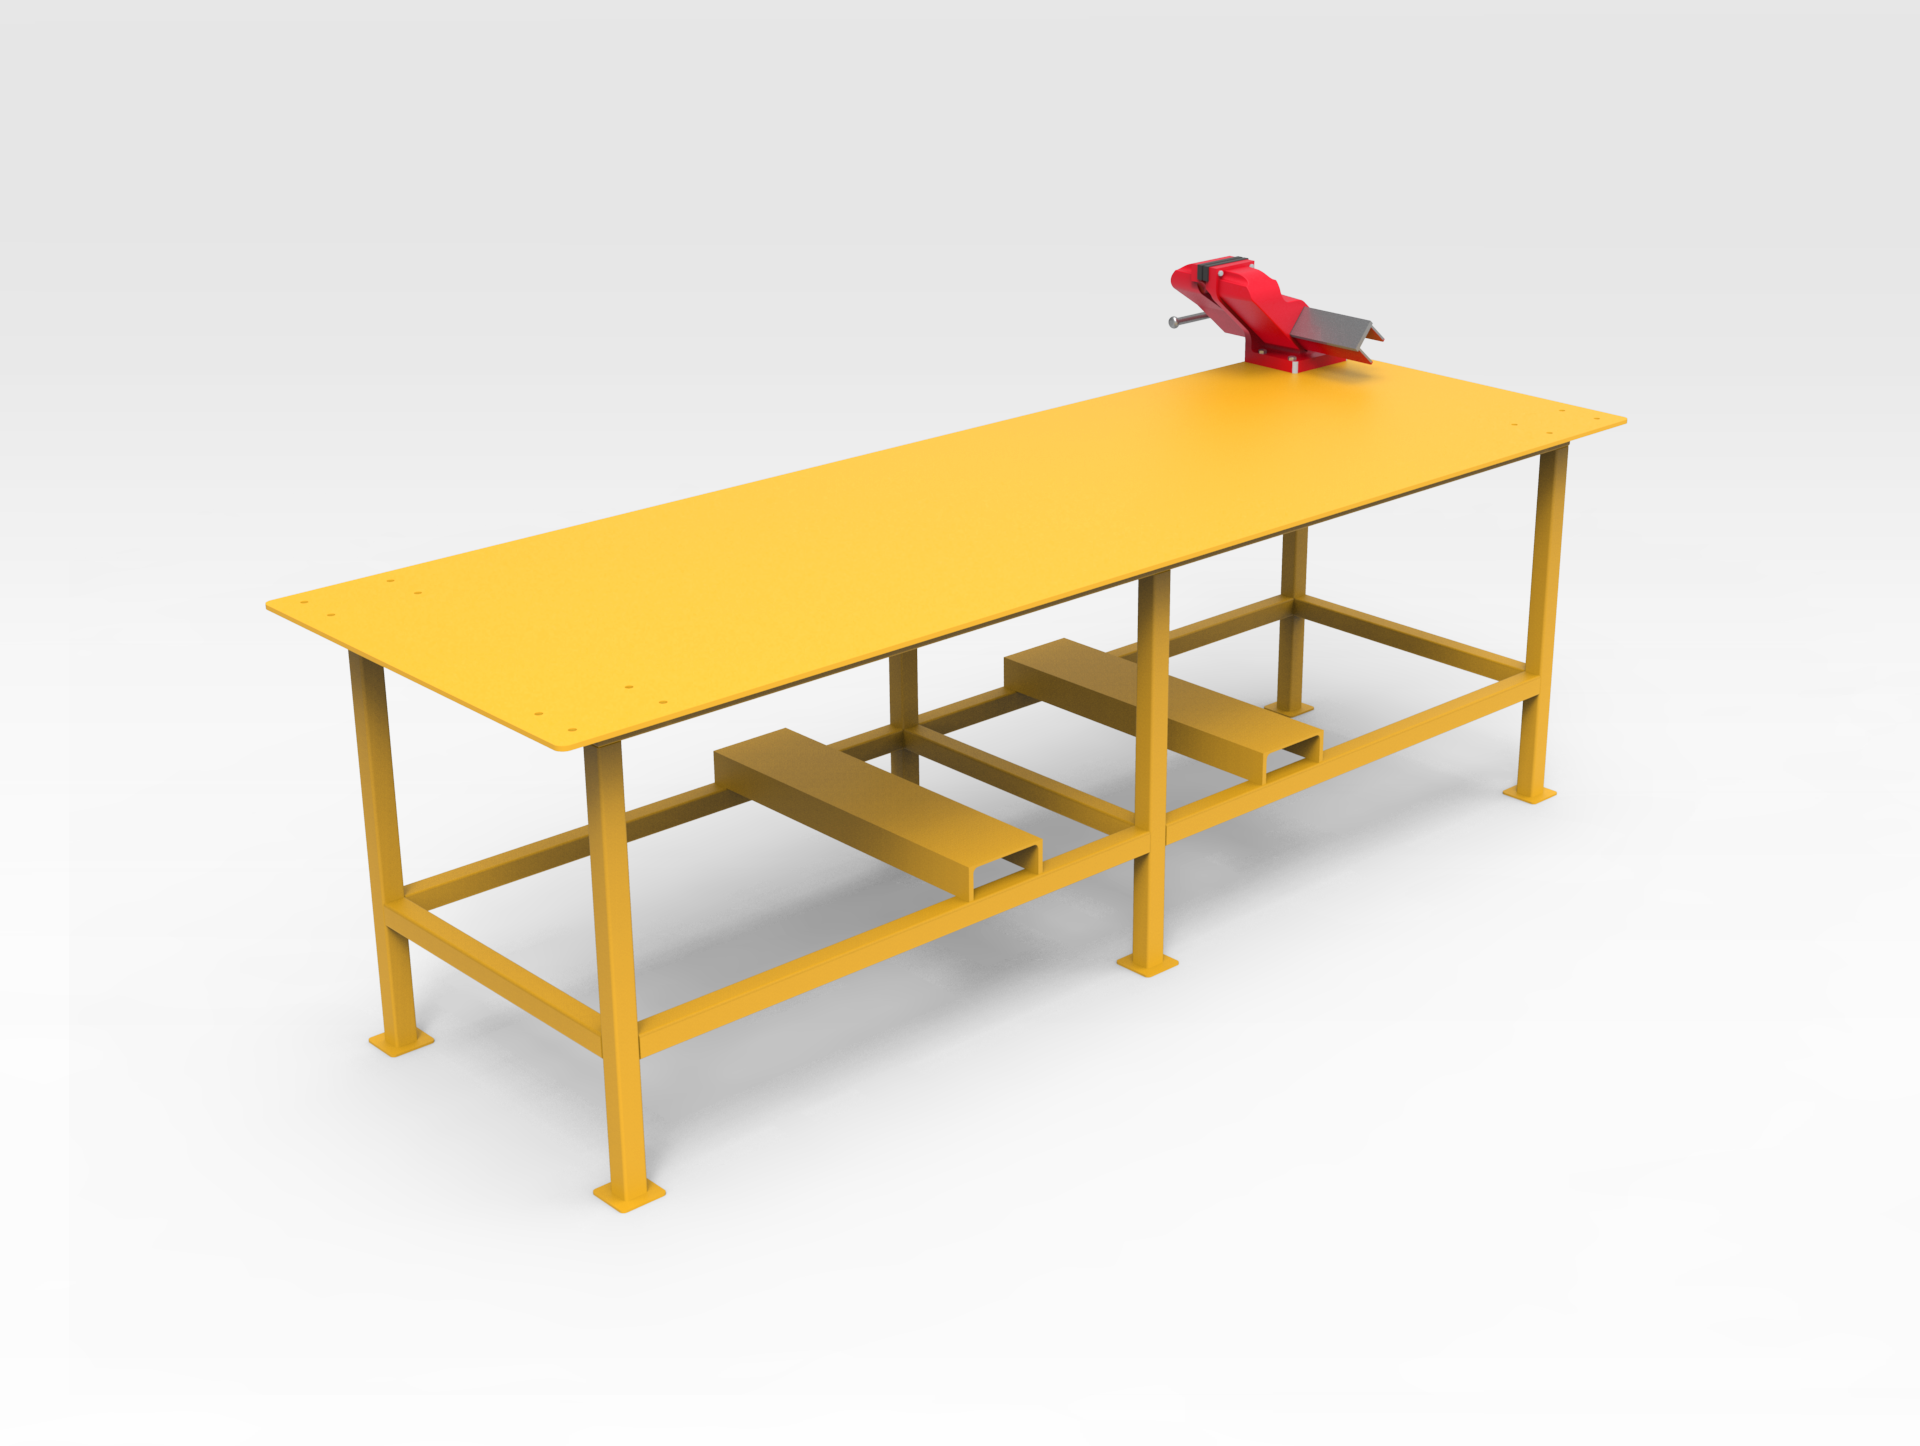 Workbench with Vice 1 Tonne